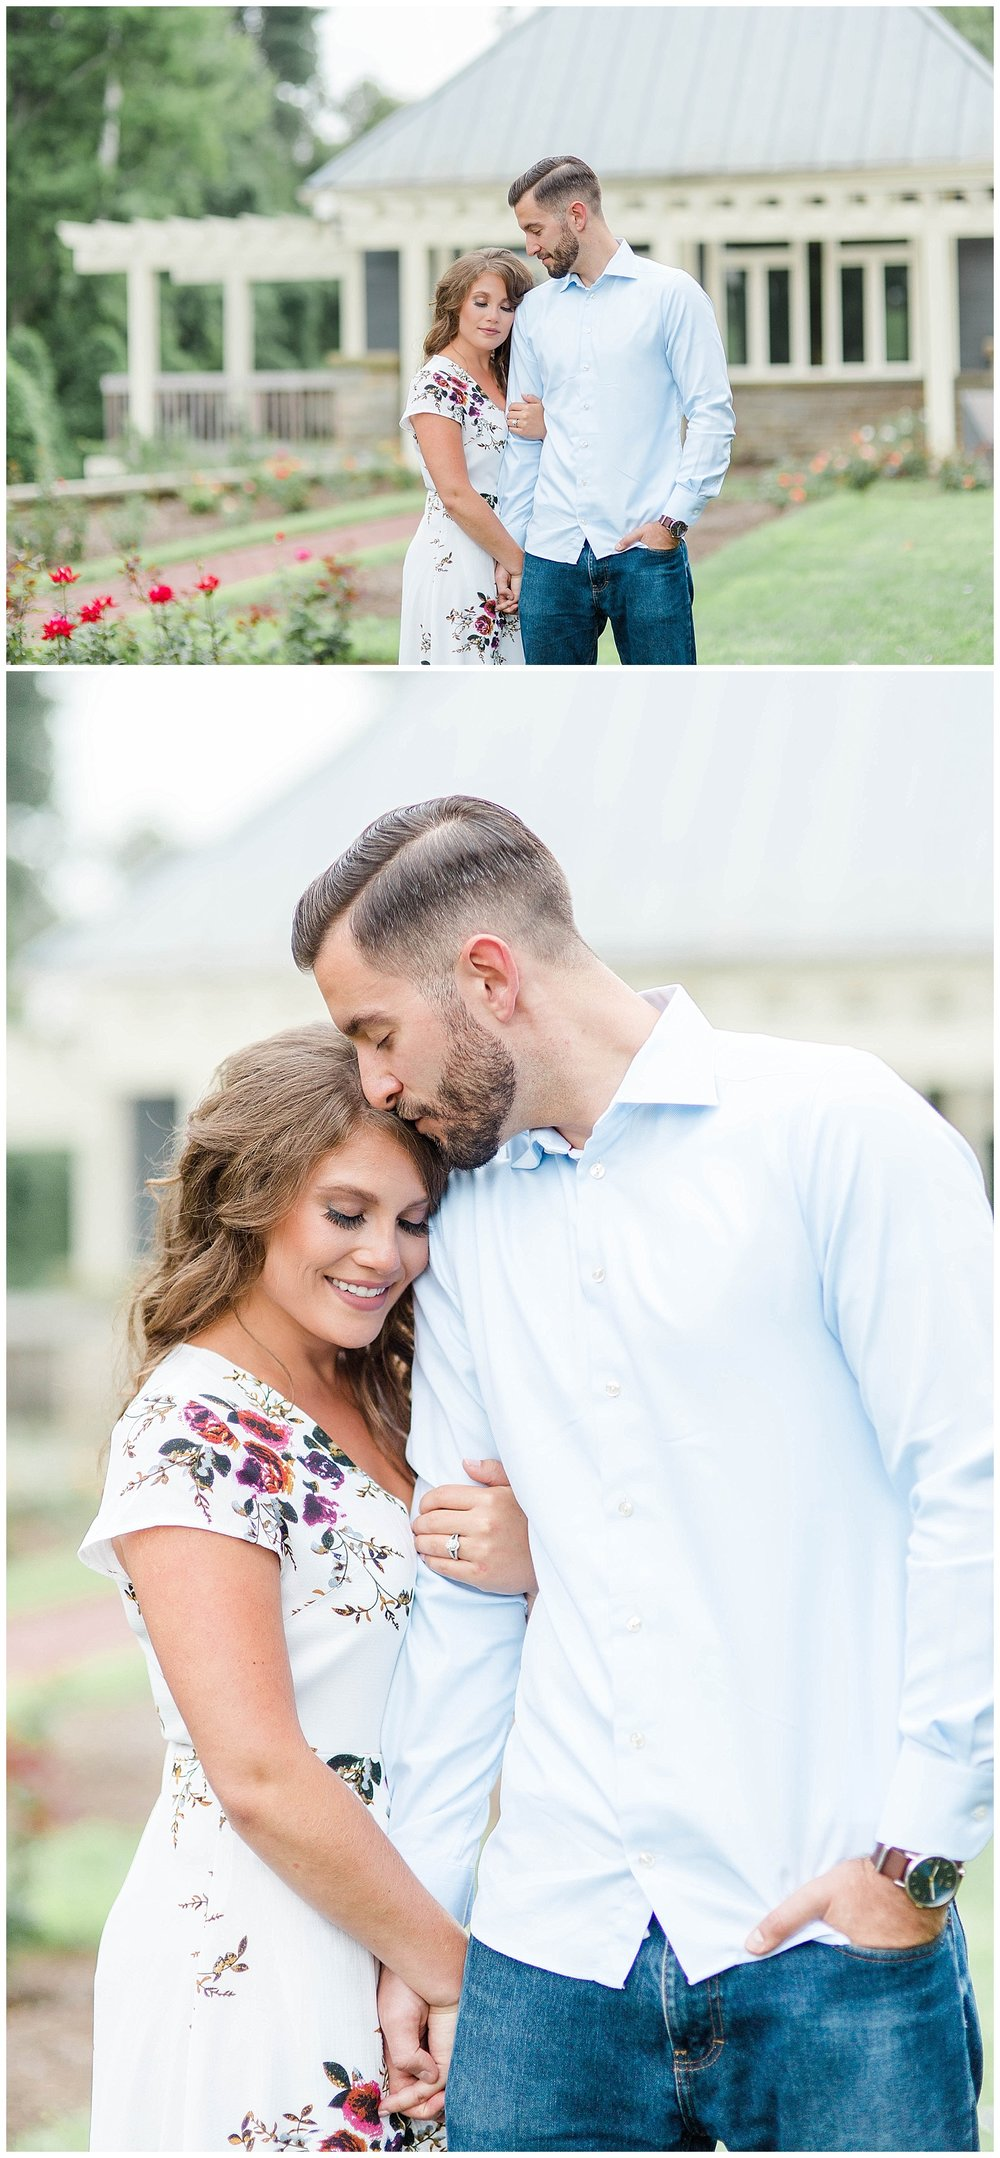 Huntington_Wv_Engagement_Kara_Blakeman_Photography_2018_8